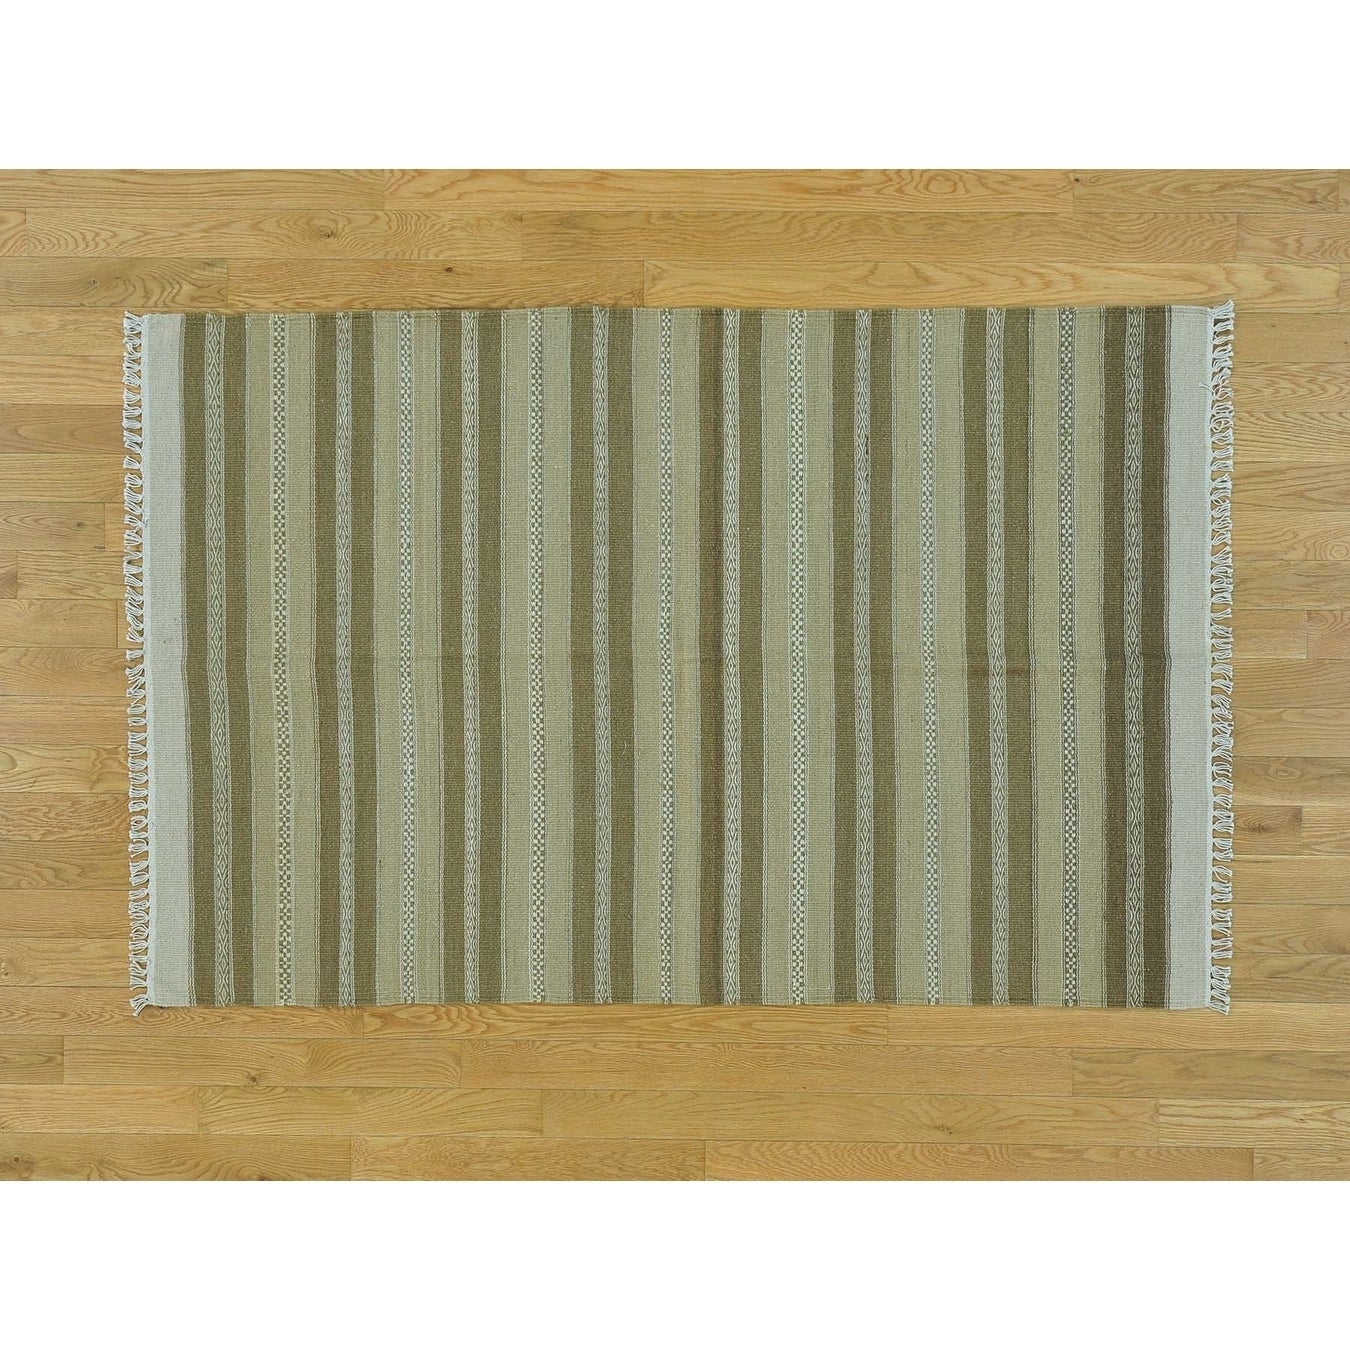 Hand Knotted Multicolored Flat Weave with Wool Oriental Rug - 310 x 6